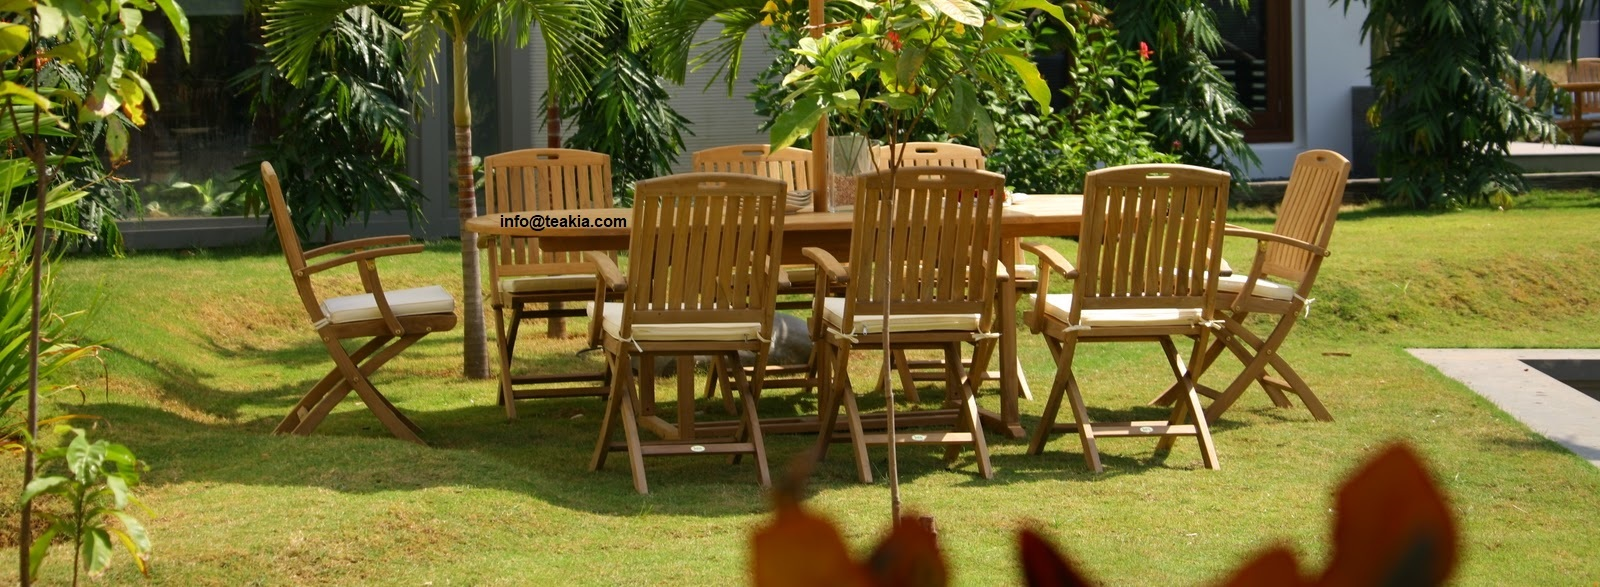 Teakia Teak Furniture Malaysia Solid Wood Furniture Kl